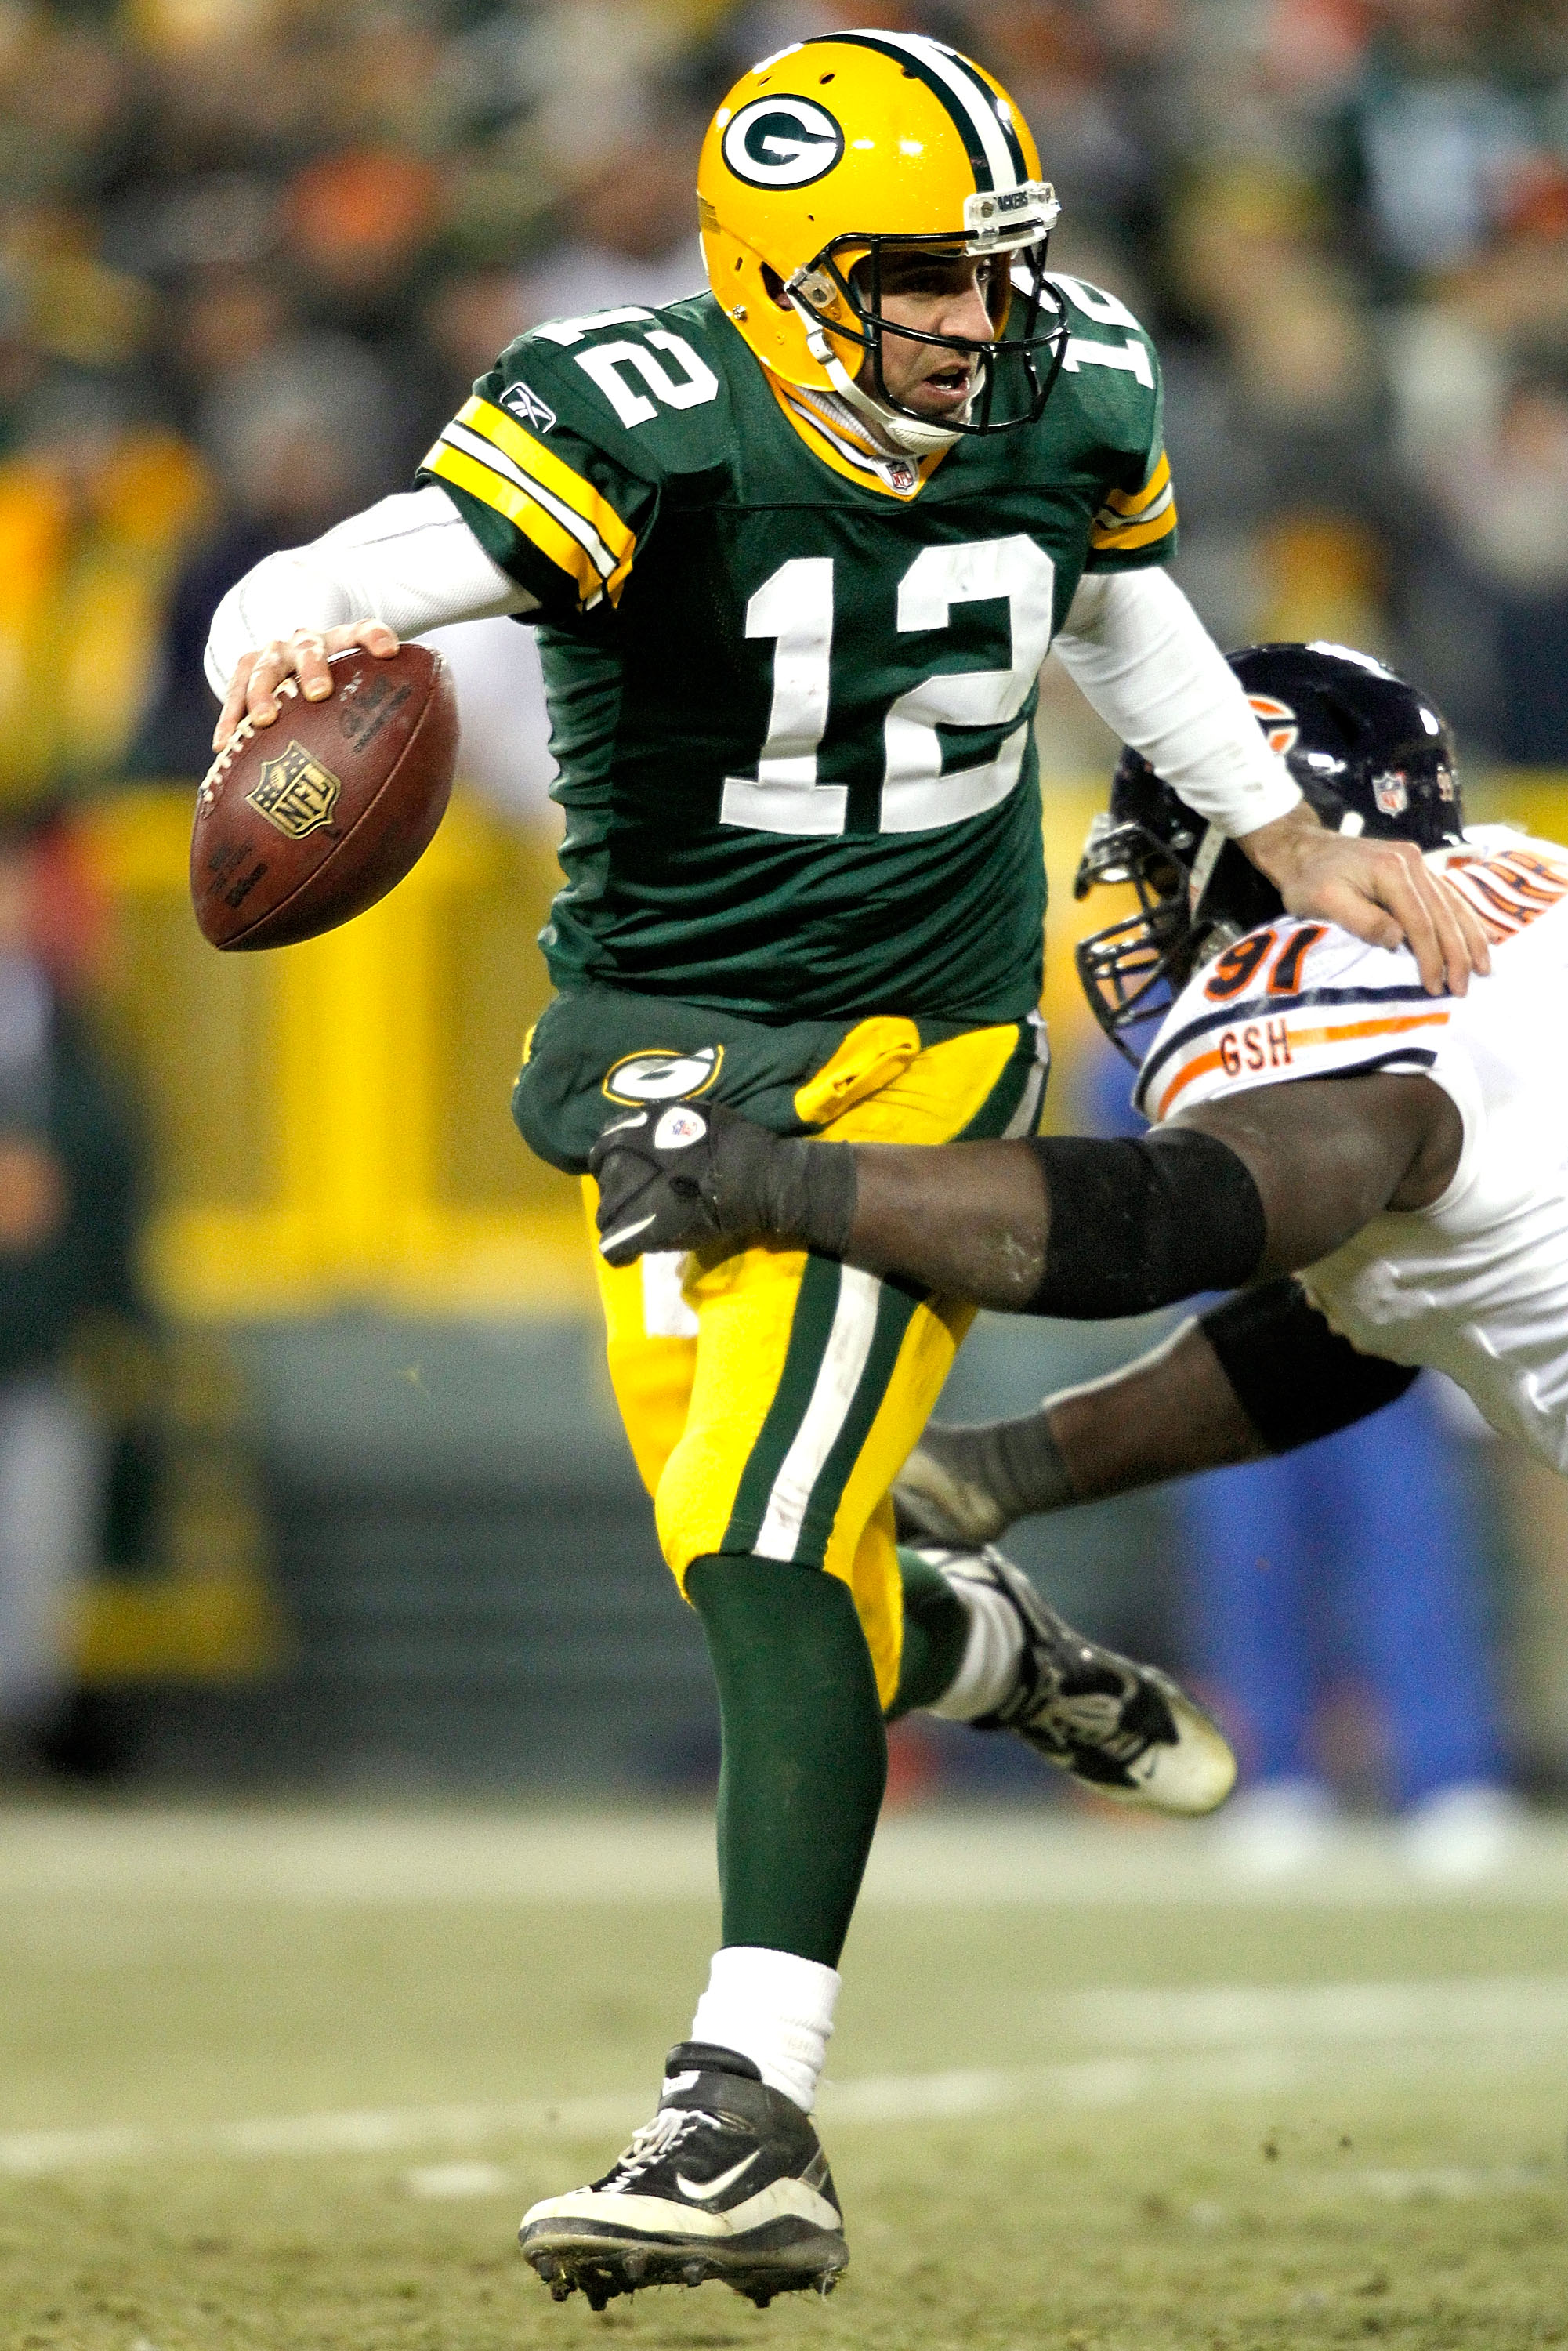 GREEN BAY, WI - JANUARY 02:  Quarterback Aaron Rodgers #12 of the Green Bay Packers attempts to break free from Tommie Harris #91 of the Chicago Bears at Lambeau Field on January 2, 2011 in Green Bay, Wisconsin.  (Photo by Matthew Stockman/Getty Images)